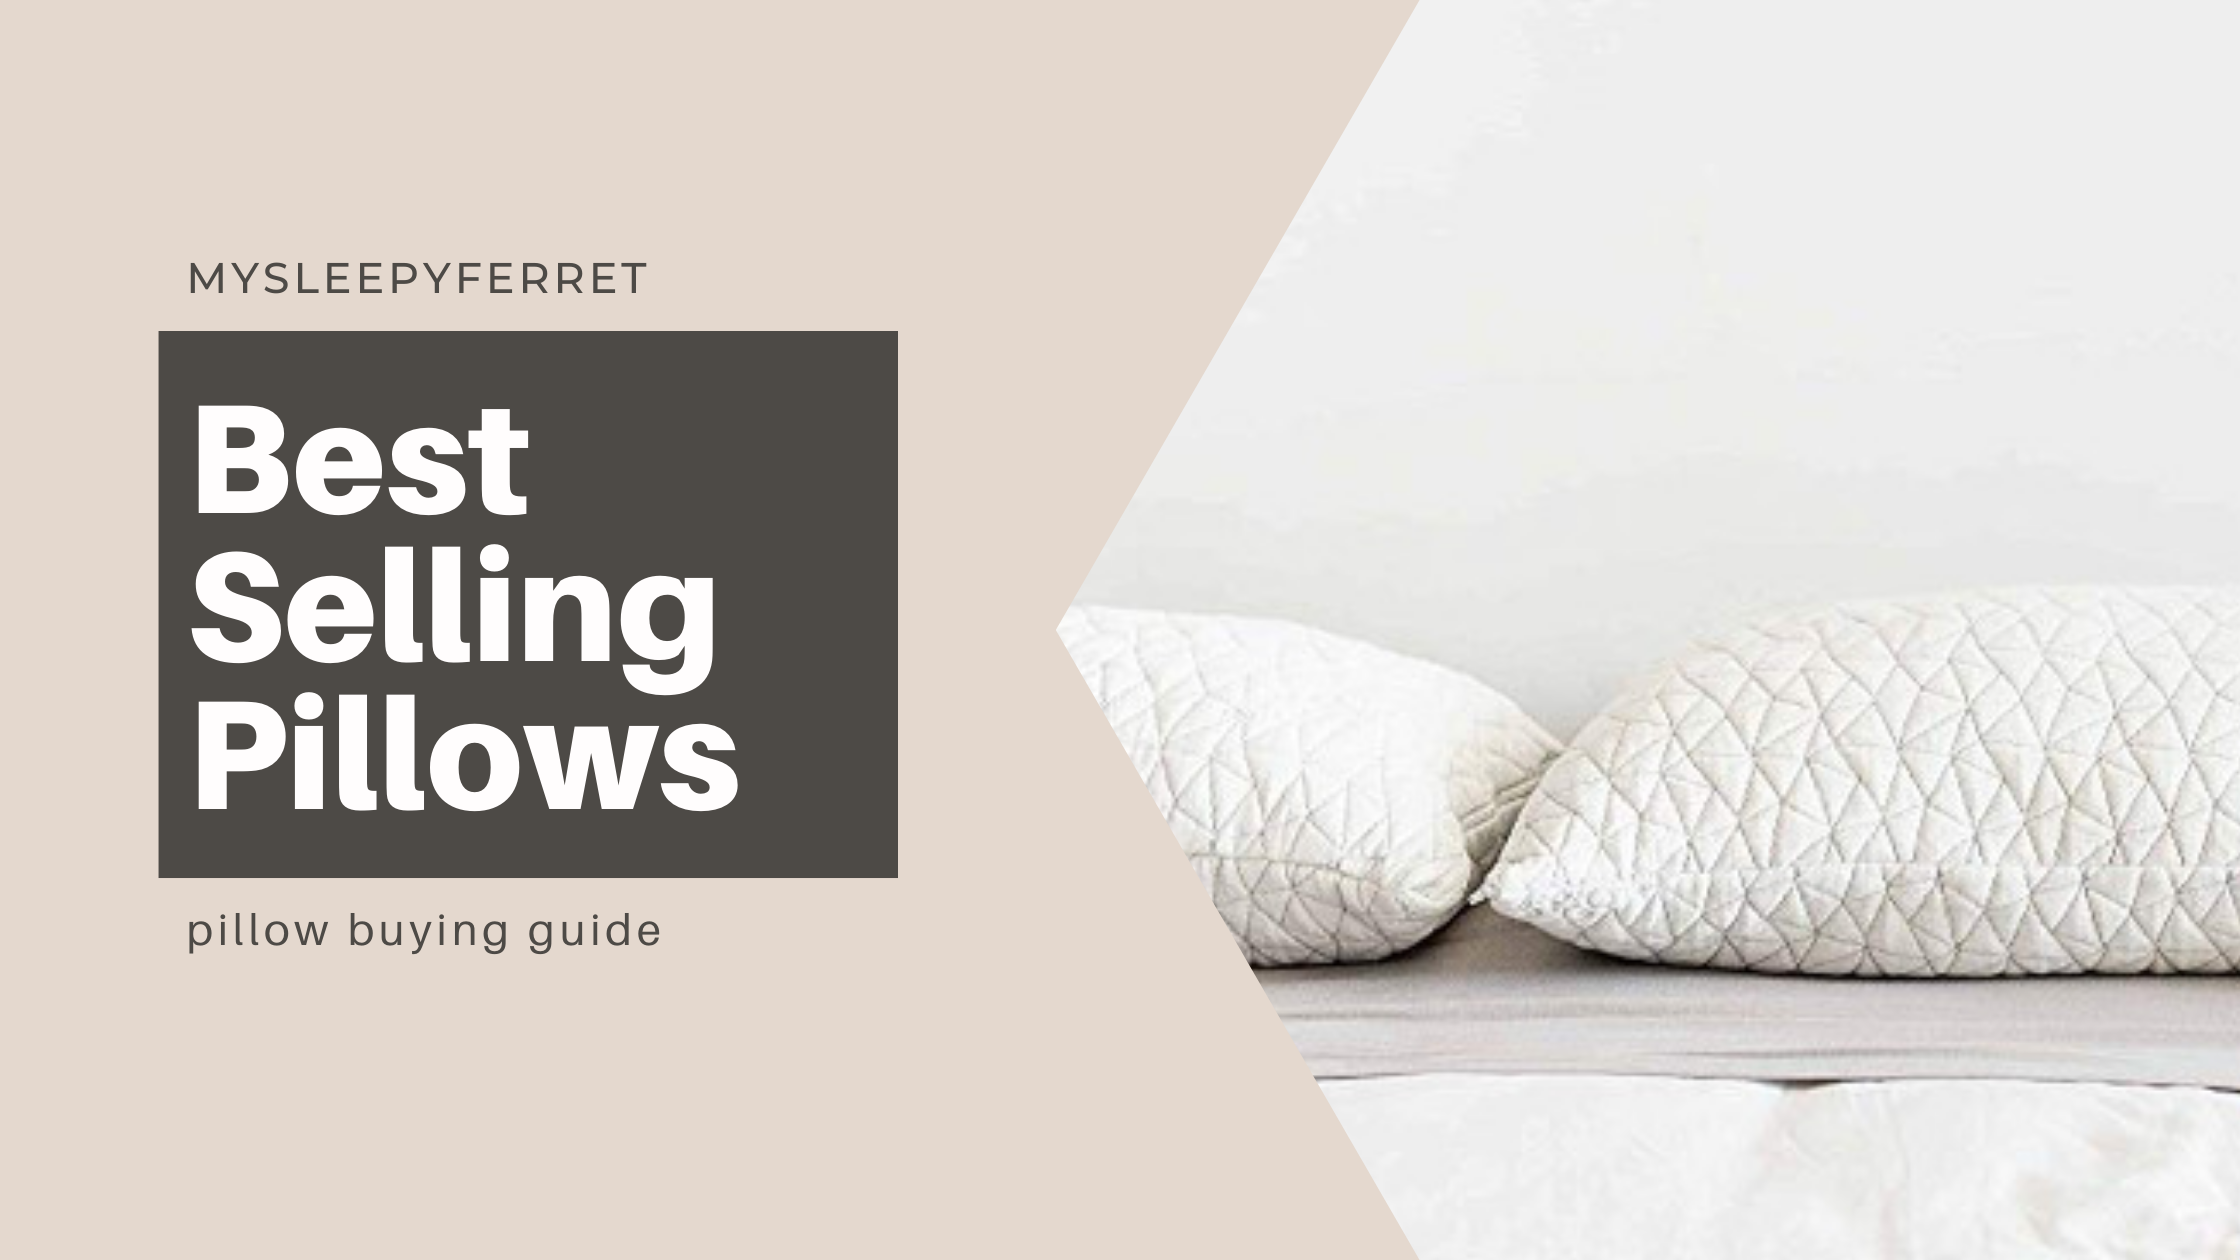 5 Best Selling Pillows for Proven Neck Support